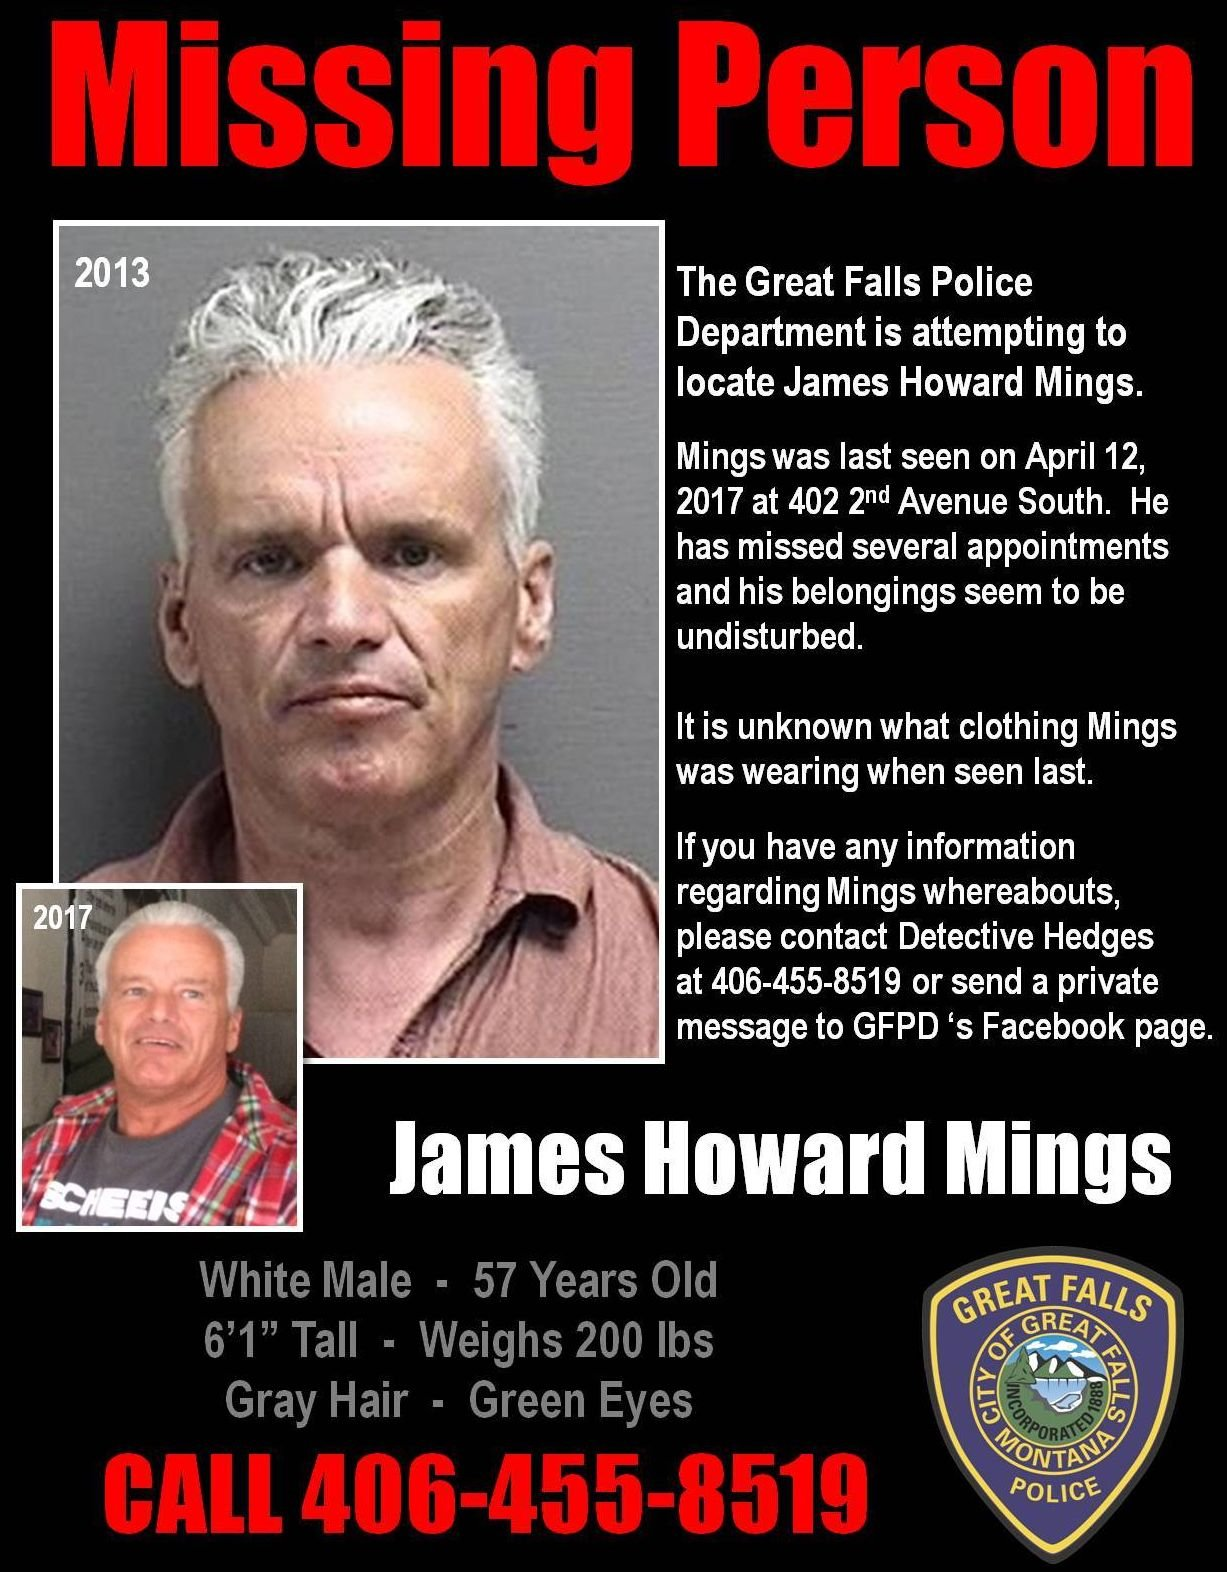 James Mings - Missing Person in Great Falls